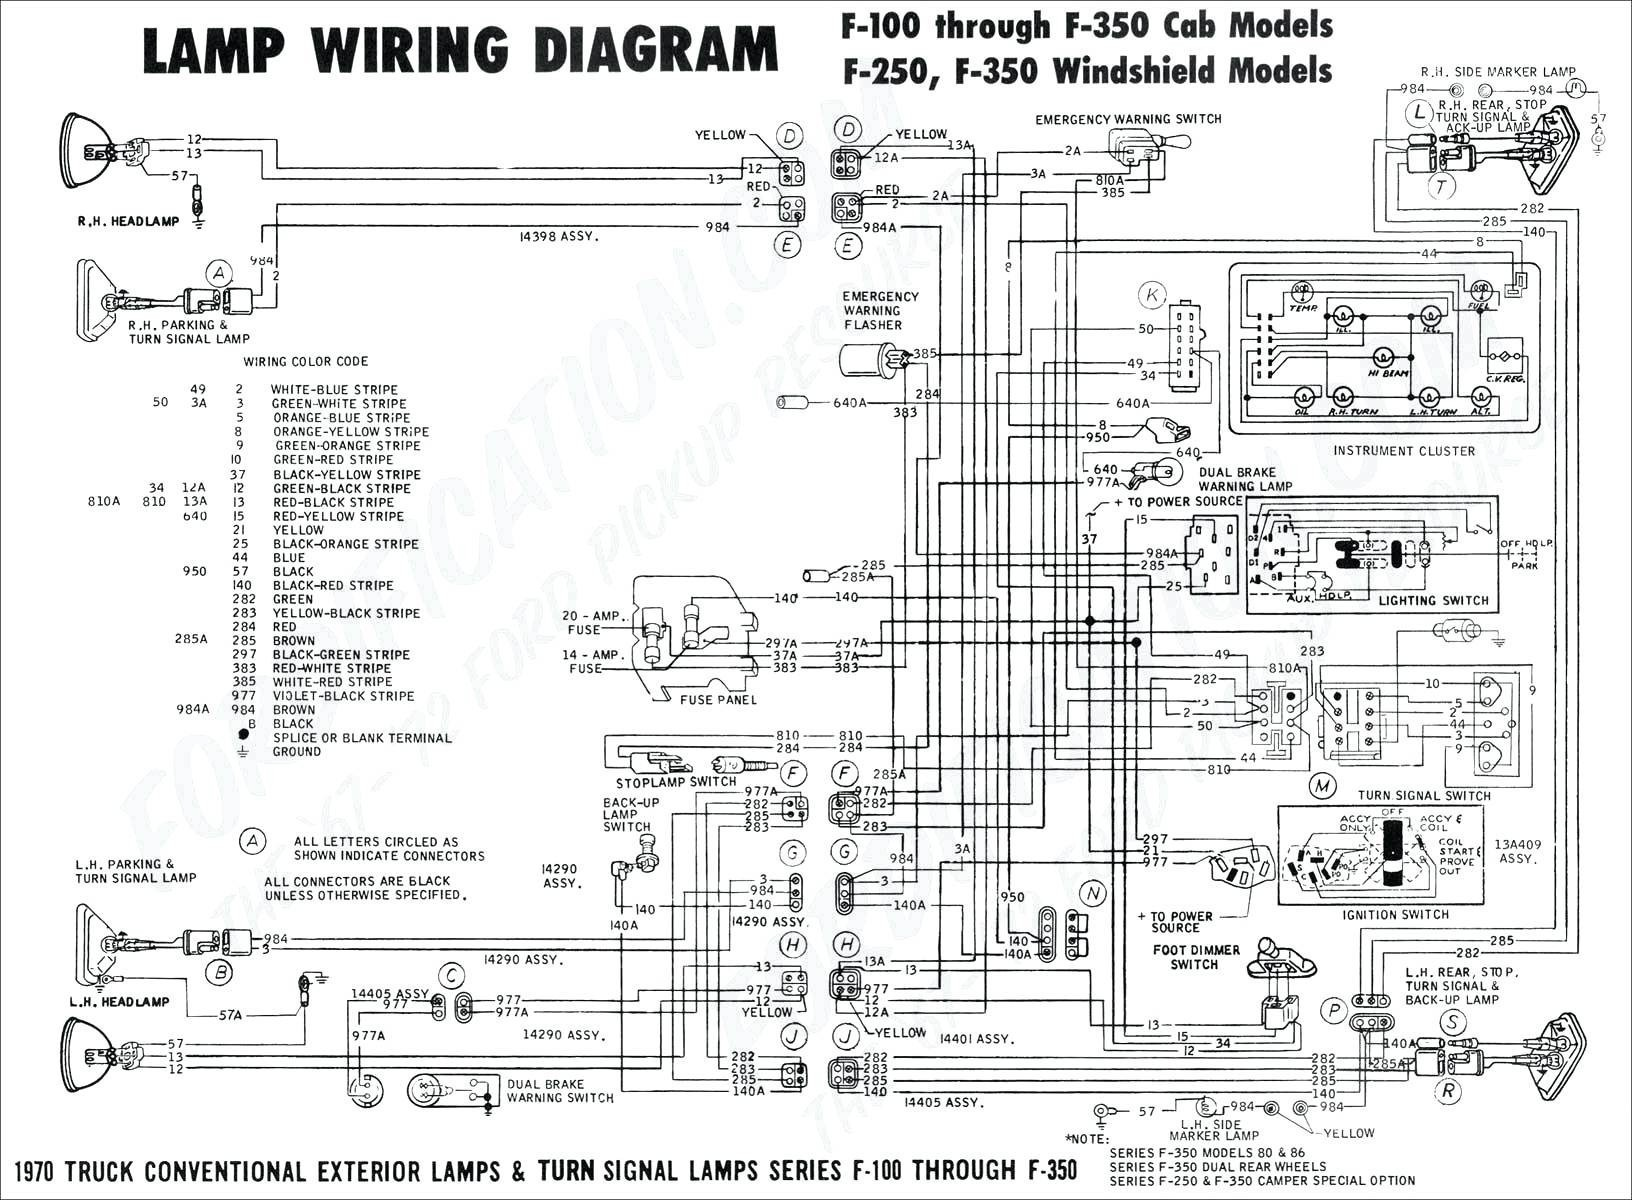 2001 Buick Lesabre Engine Diagram 2003 Buick Lesabre Radio Wiring Diagram Book F53 Wiring Radio Of 2001 Buick Lesabre Engine Diagram